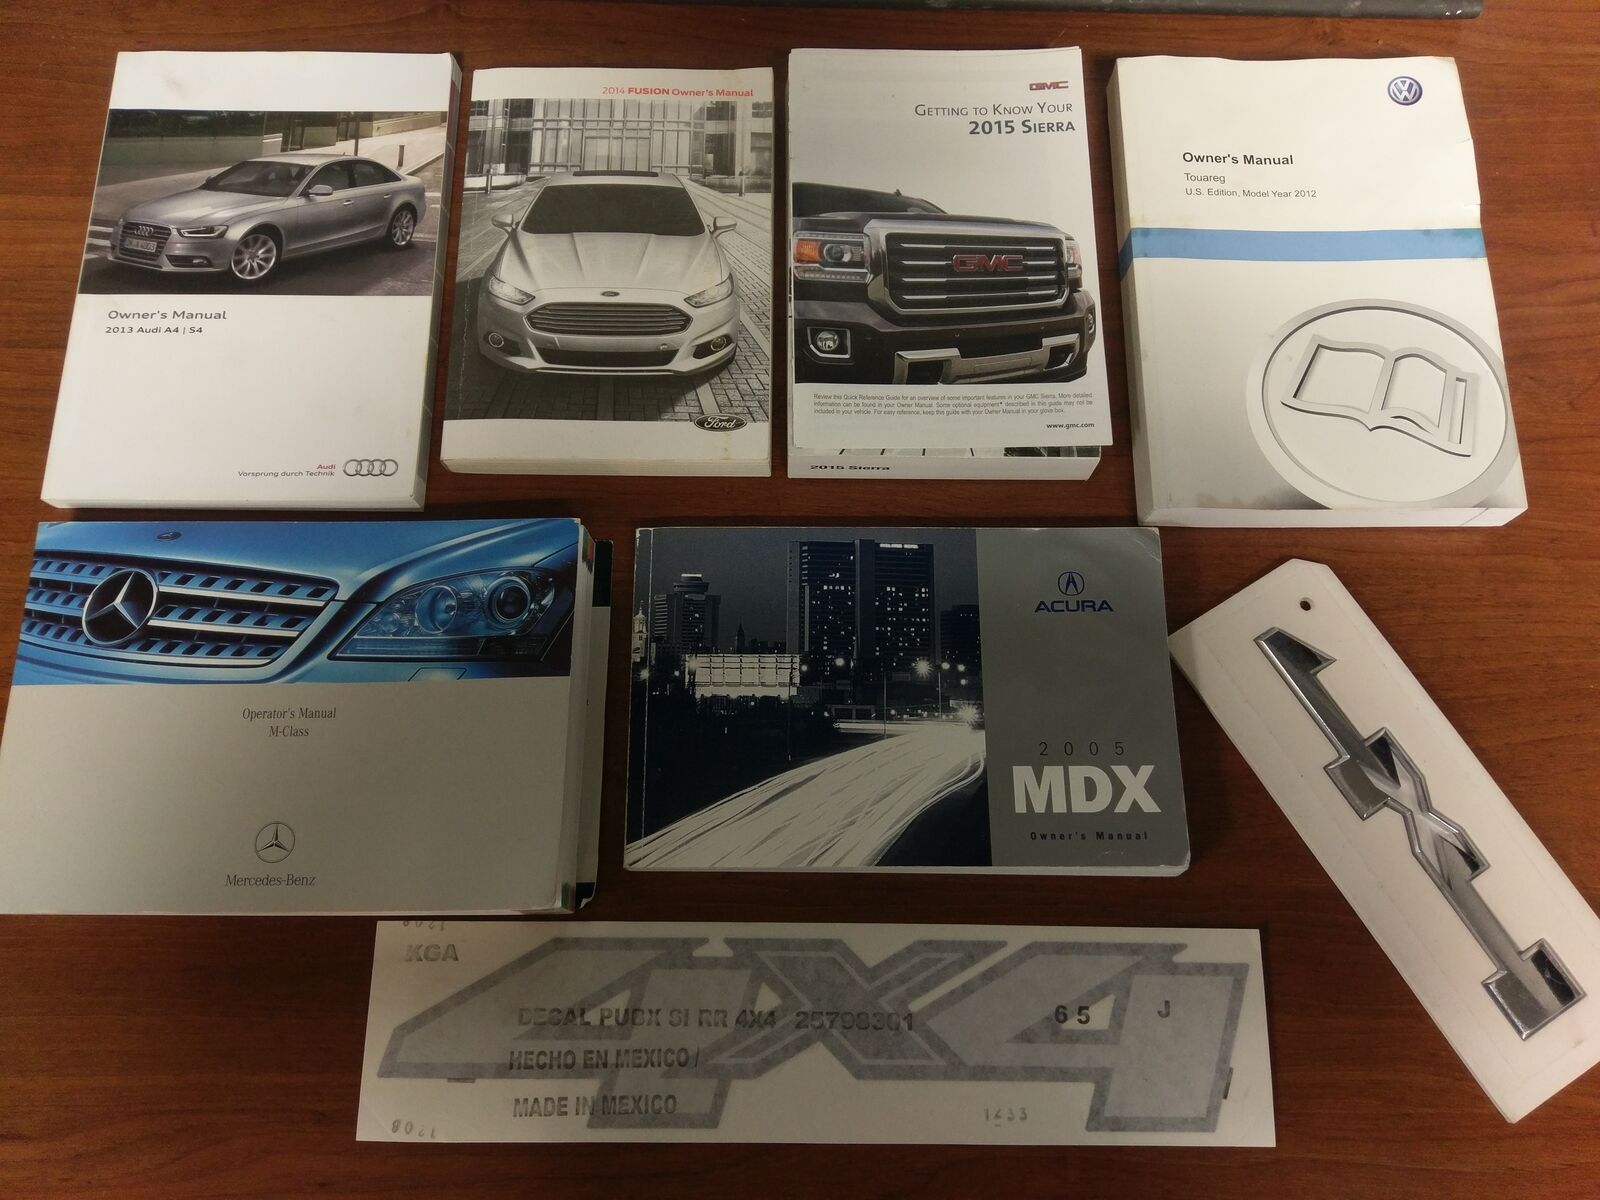 Manuals, Accessories & So Much More